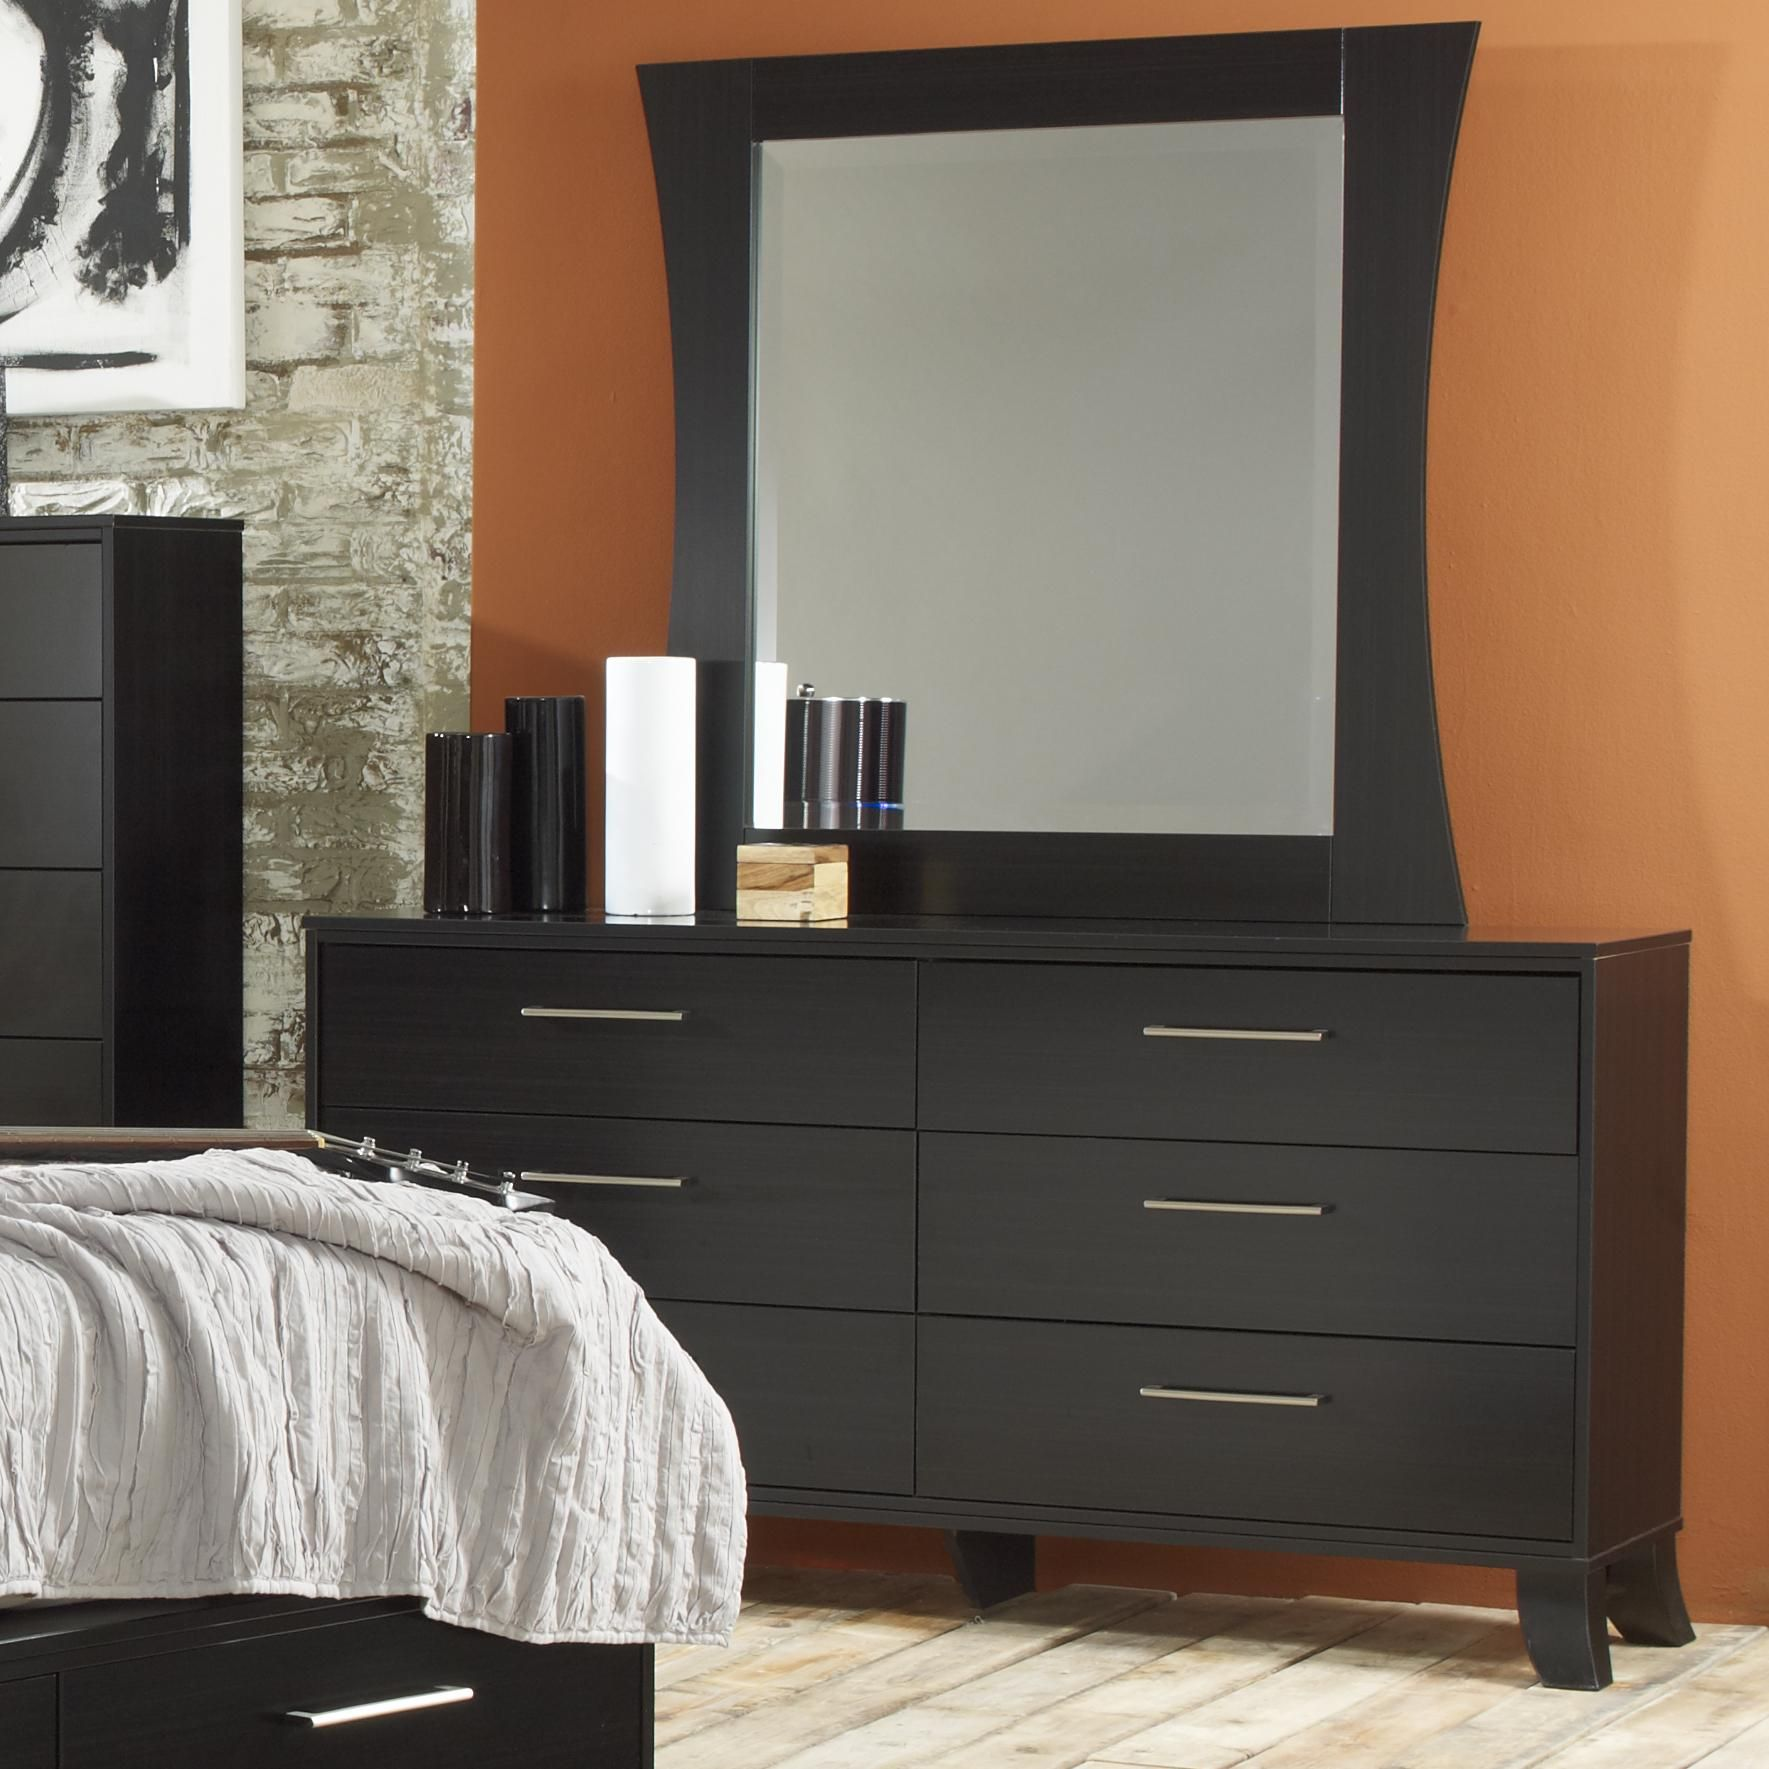 16 Black 6 Drawer Dresser With Mirror In Bedroom For You A Very Long Dresser Isn T Almost Bedroom Chest Of Drawers Dresser With Mirror White Bedroom Furniture [ 1769 x 1769 Pixel ]